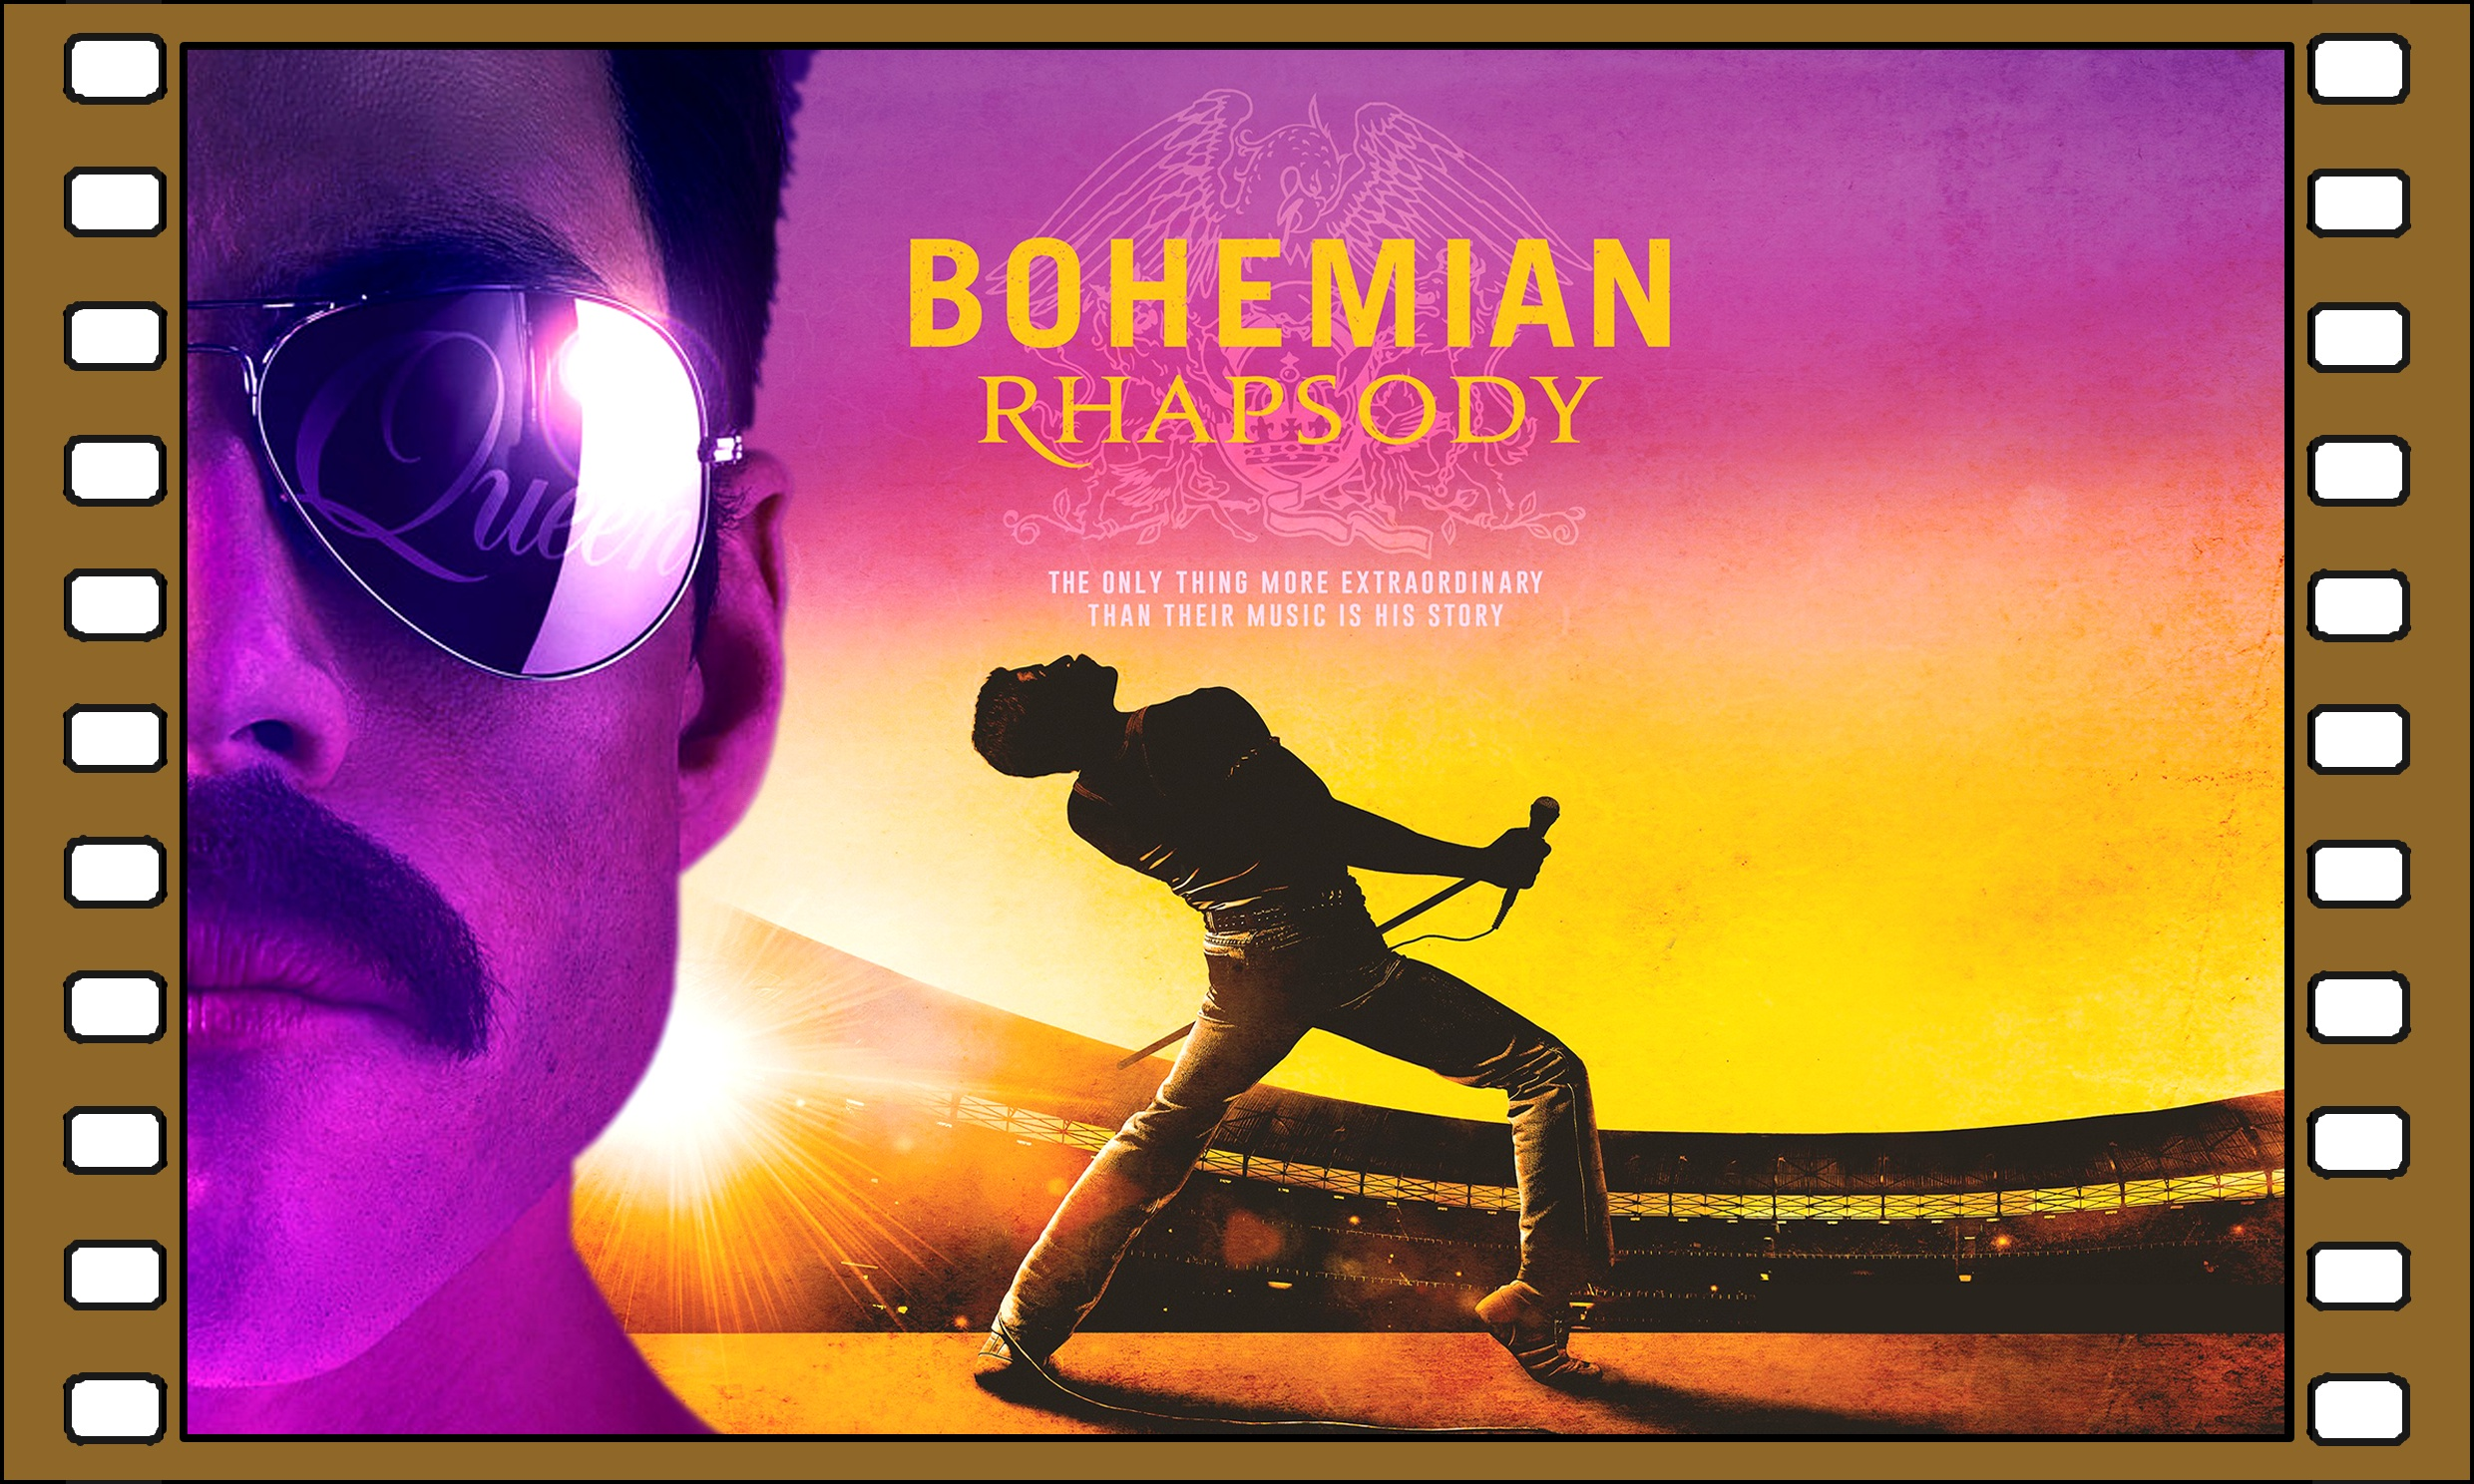 Bohemian Rhapsody at The Criterion Cinema